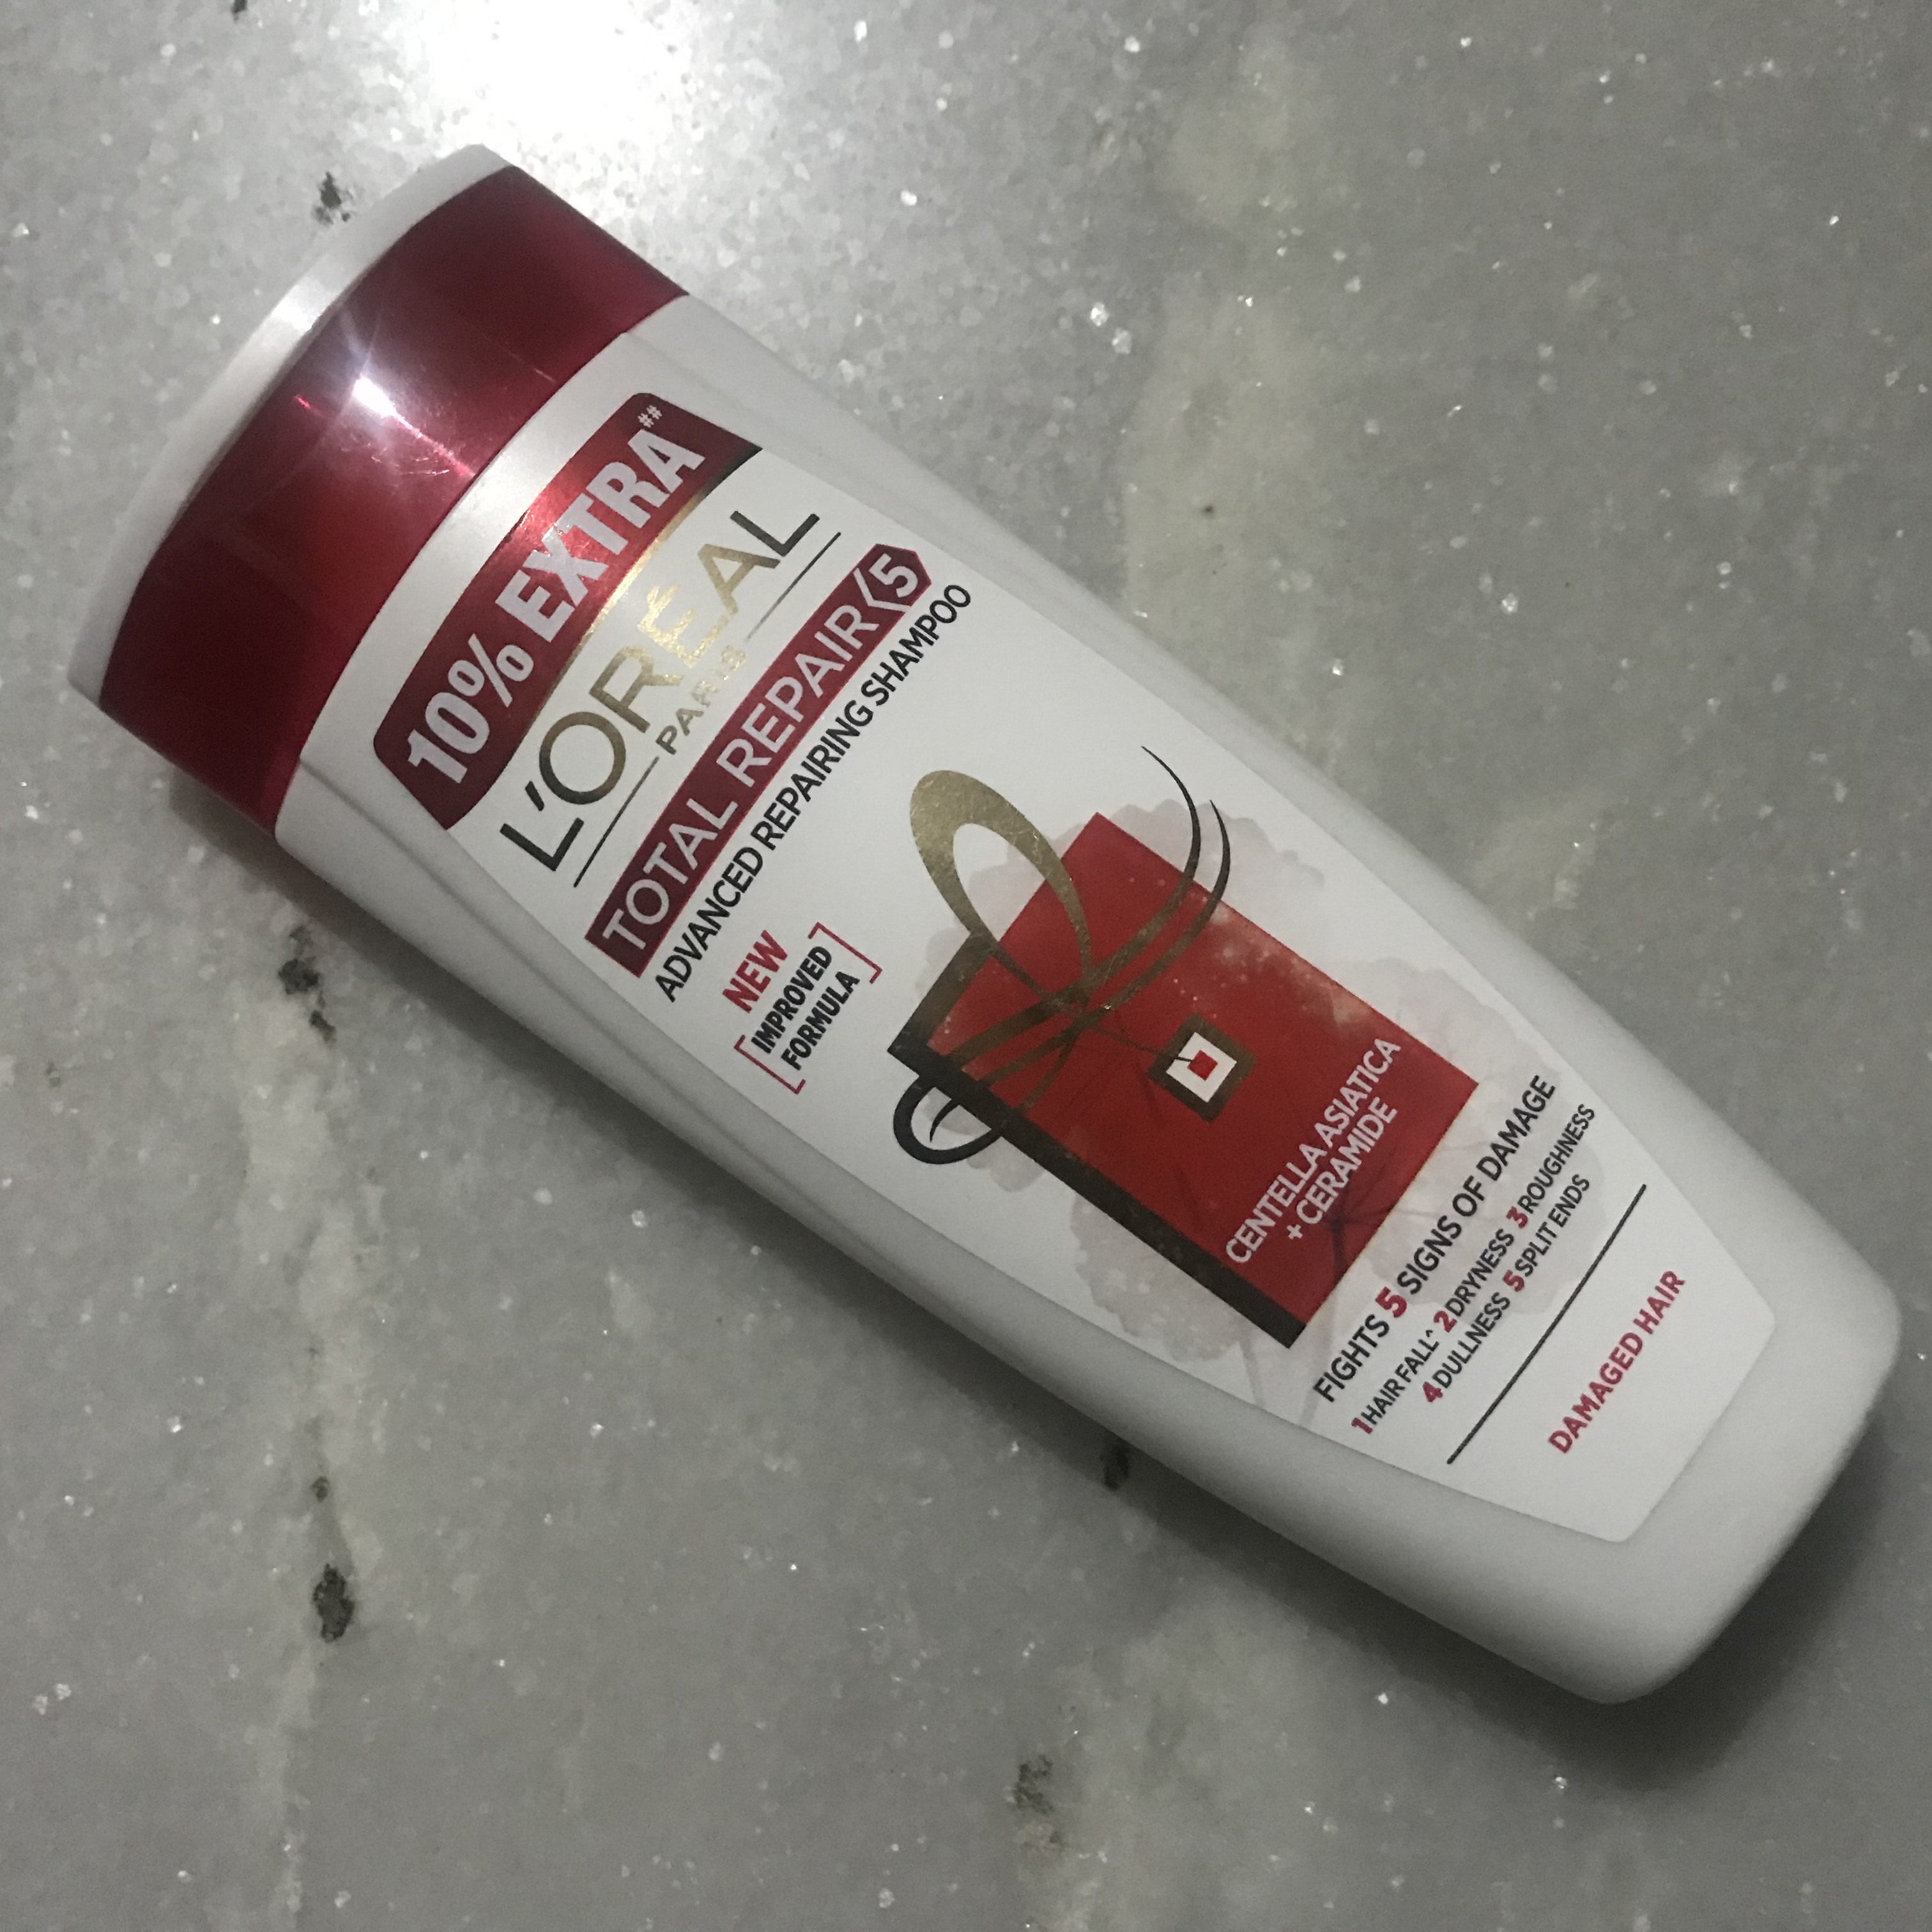 L'Oreal Paris Total Repair 5 Advanced Repairing Shampoo-Nothing great other than the smell !-By kiranbir_